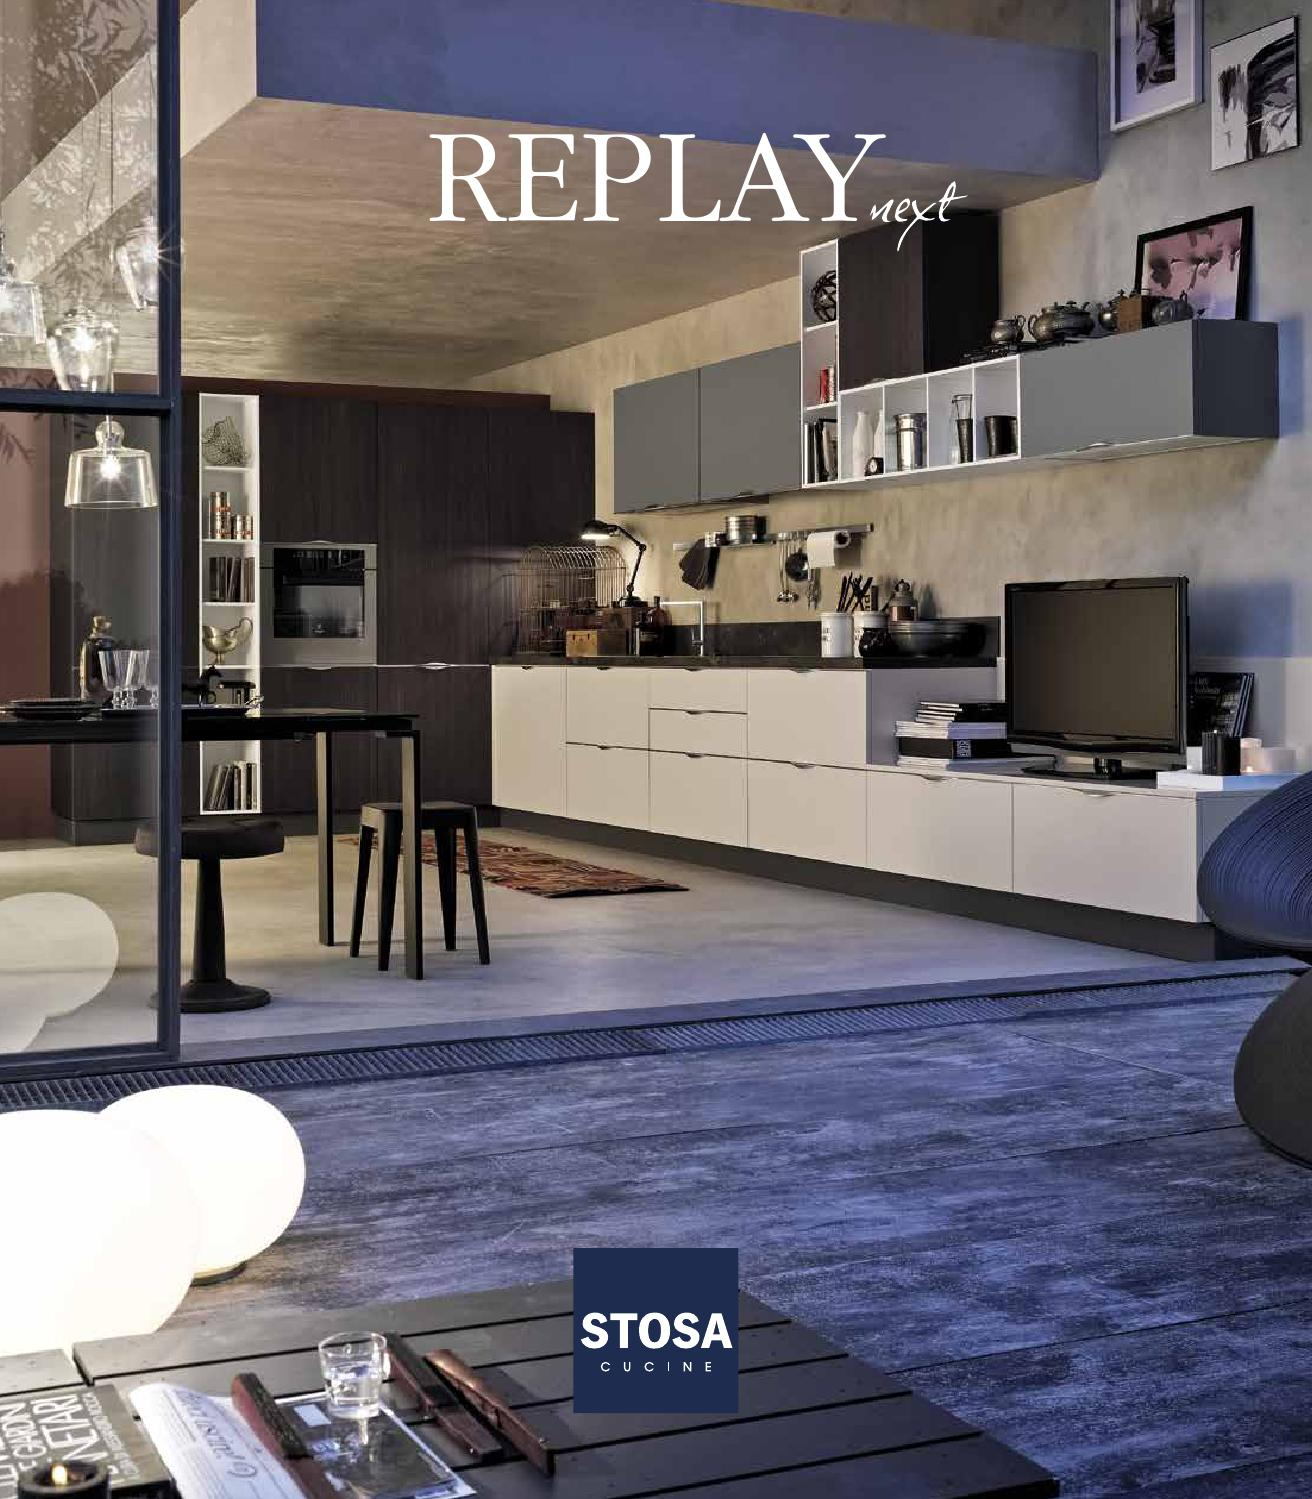 Catalogo cucine moderne stosa replay by stosa cucine issuu for Cucine stosa catalogo